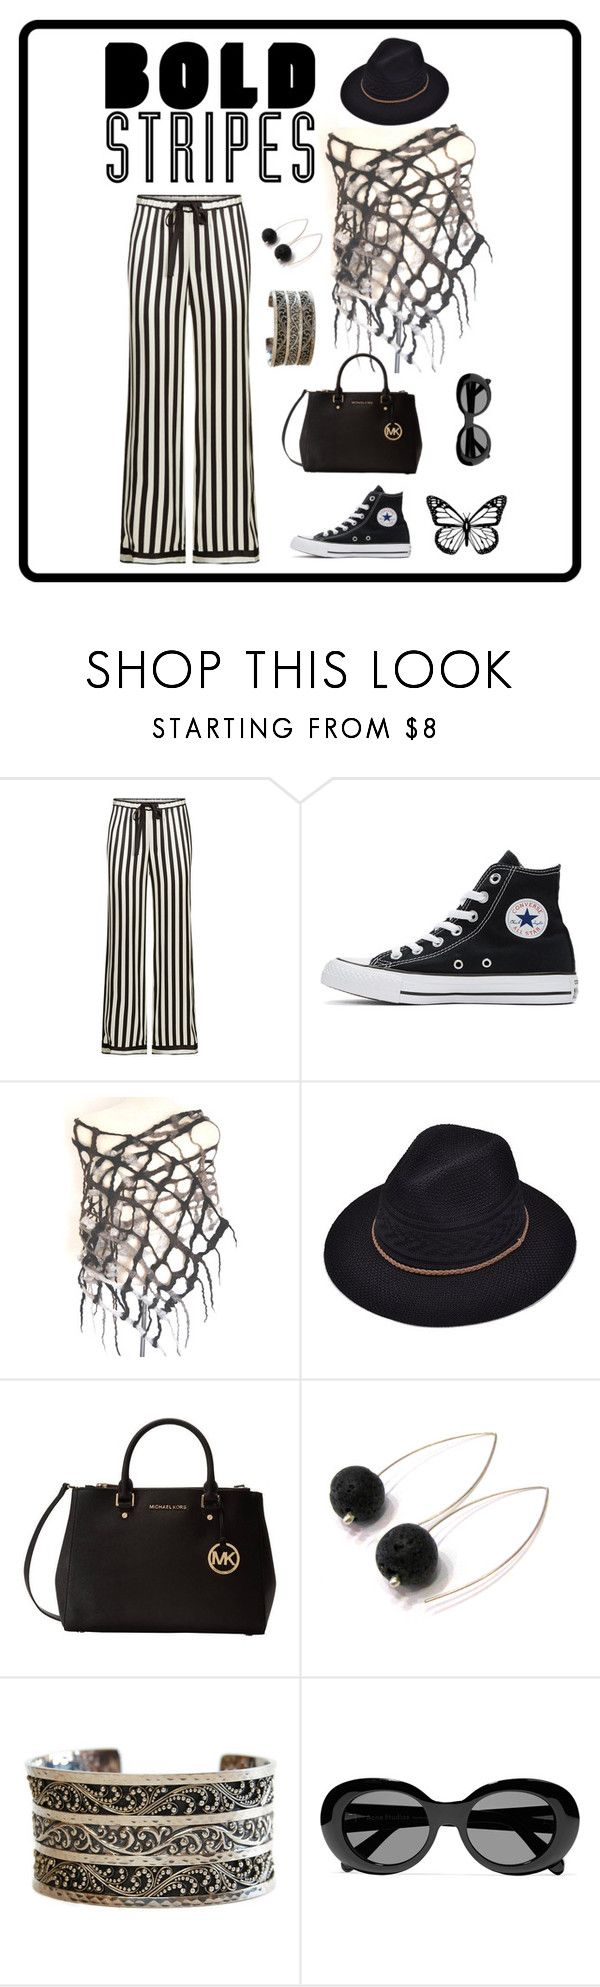 """Bold Stripes"" by locallysewntextiles ❤ liked on Polyvore featuring Morgan Lane, Converse, Michael Kors, Lois Hill and Acne Studios"